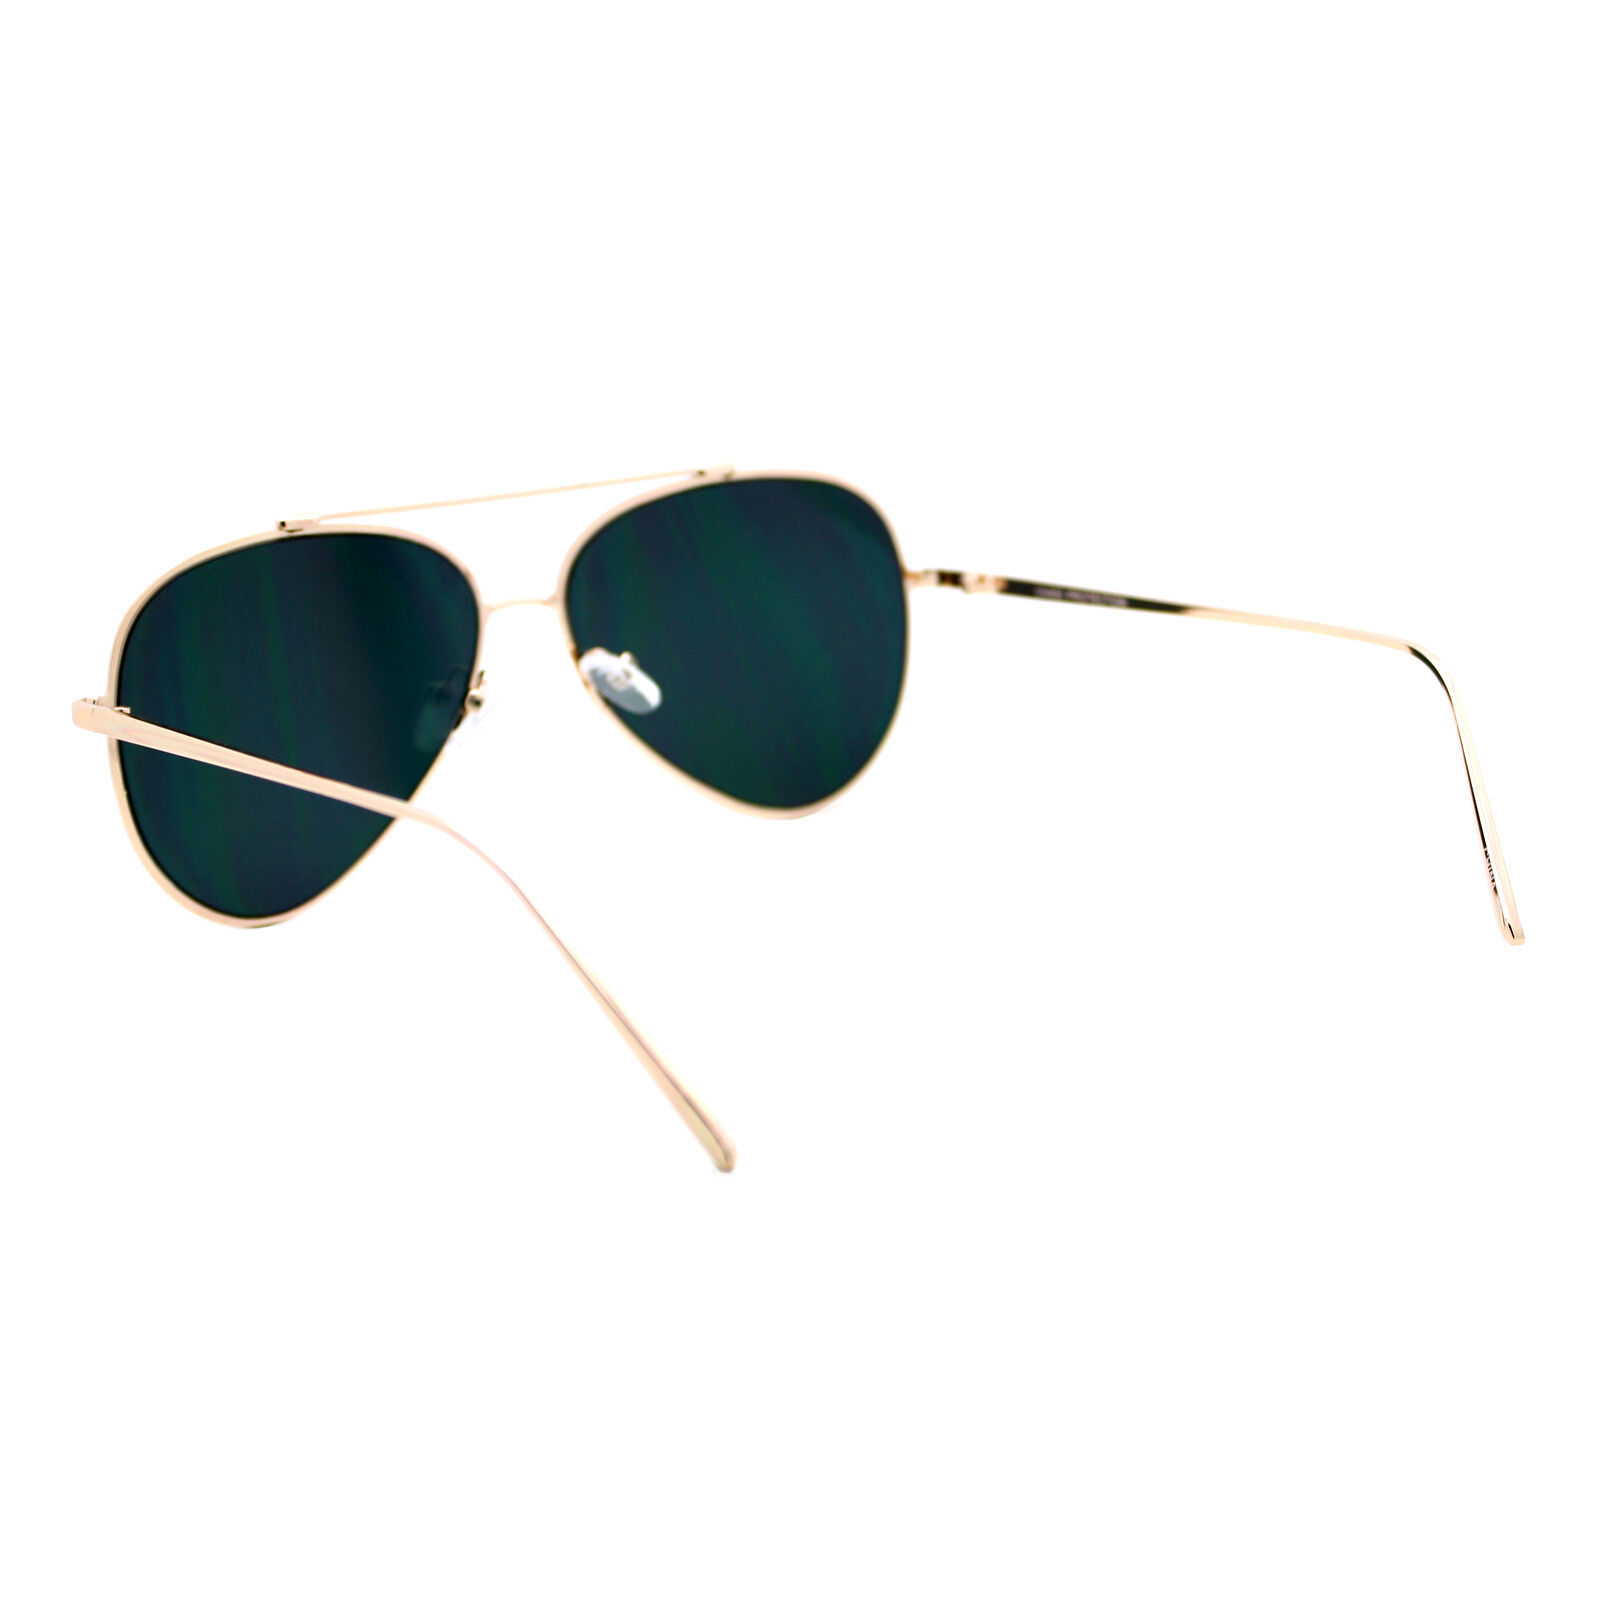 Pink Mirror Flat Lens Sunglasses Gold Metal Aviator Frame Womens Fashion